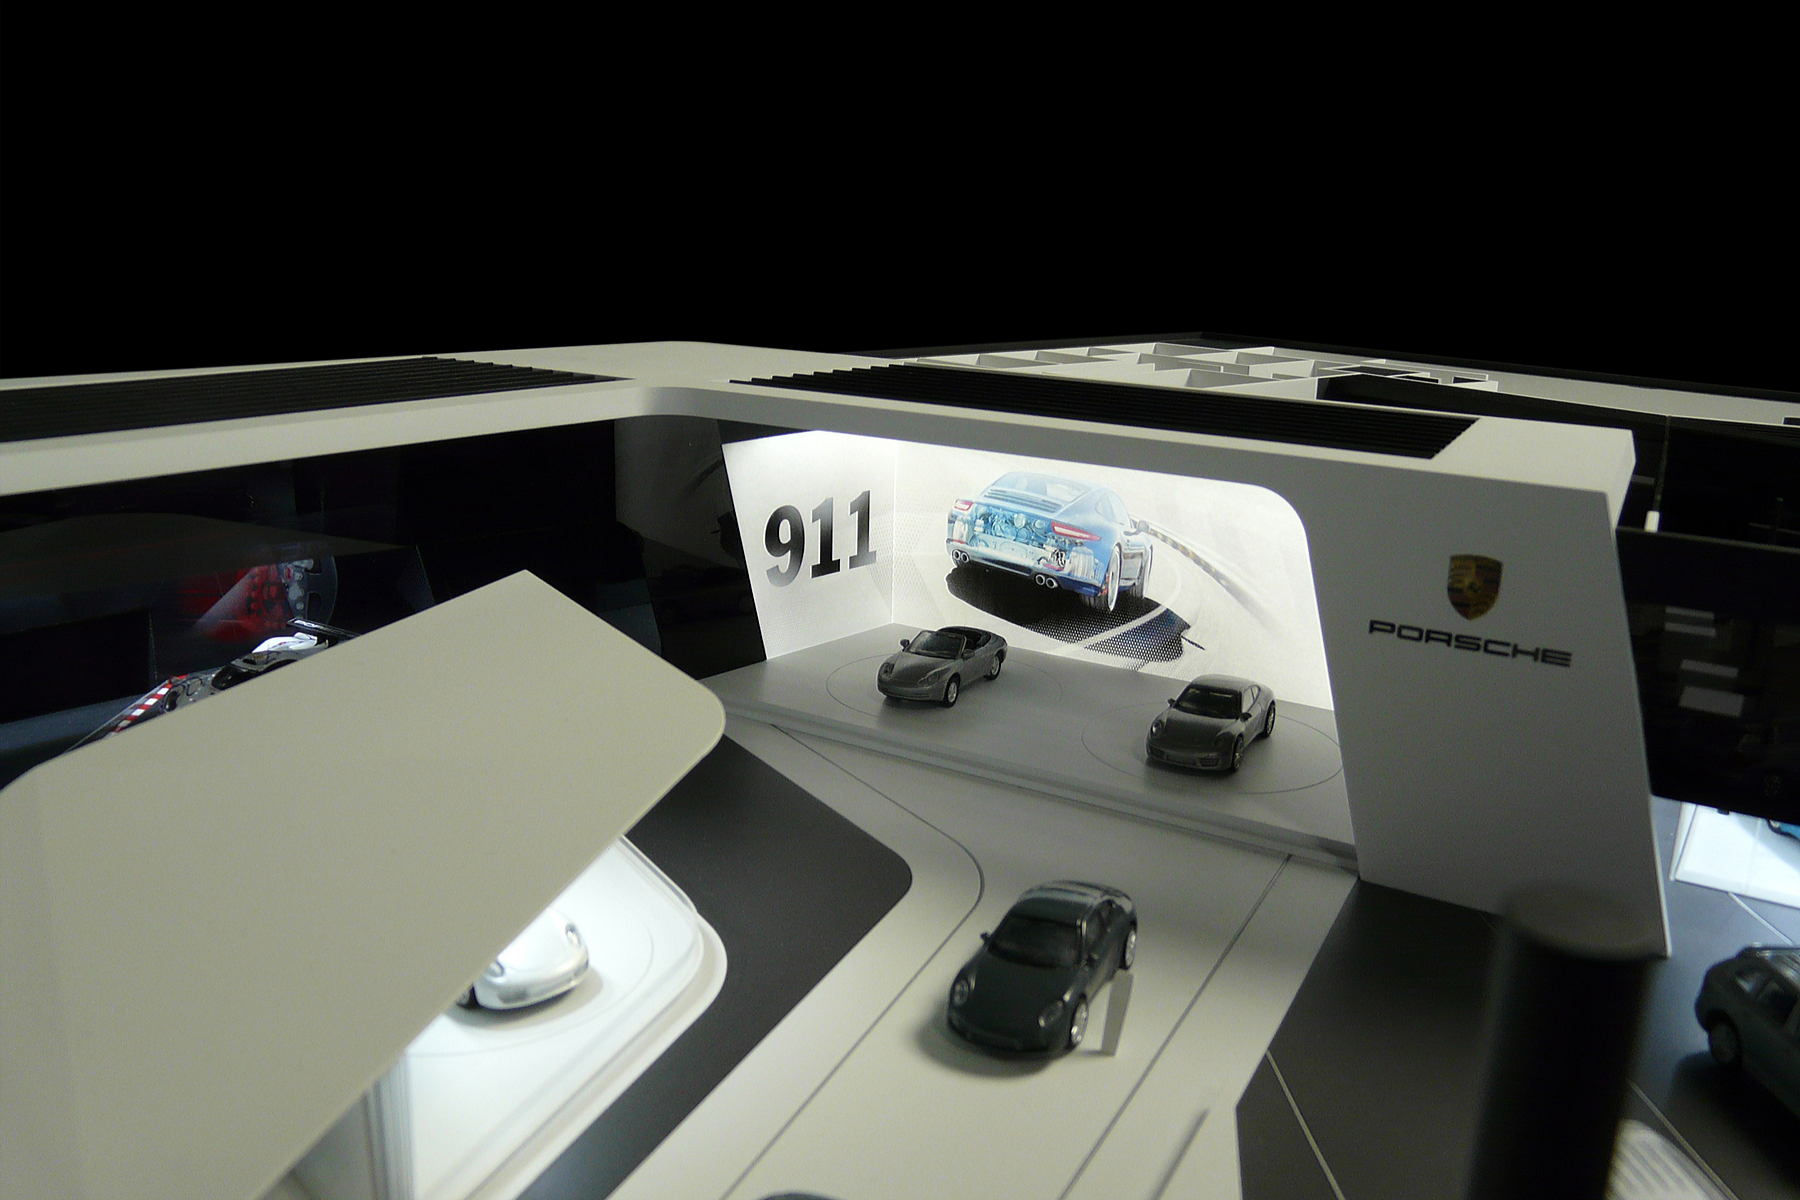 architekturmodell porsche messestand bei der internationalen automobil ausstellung 2015 b la